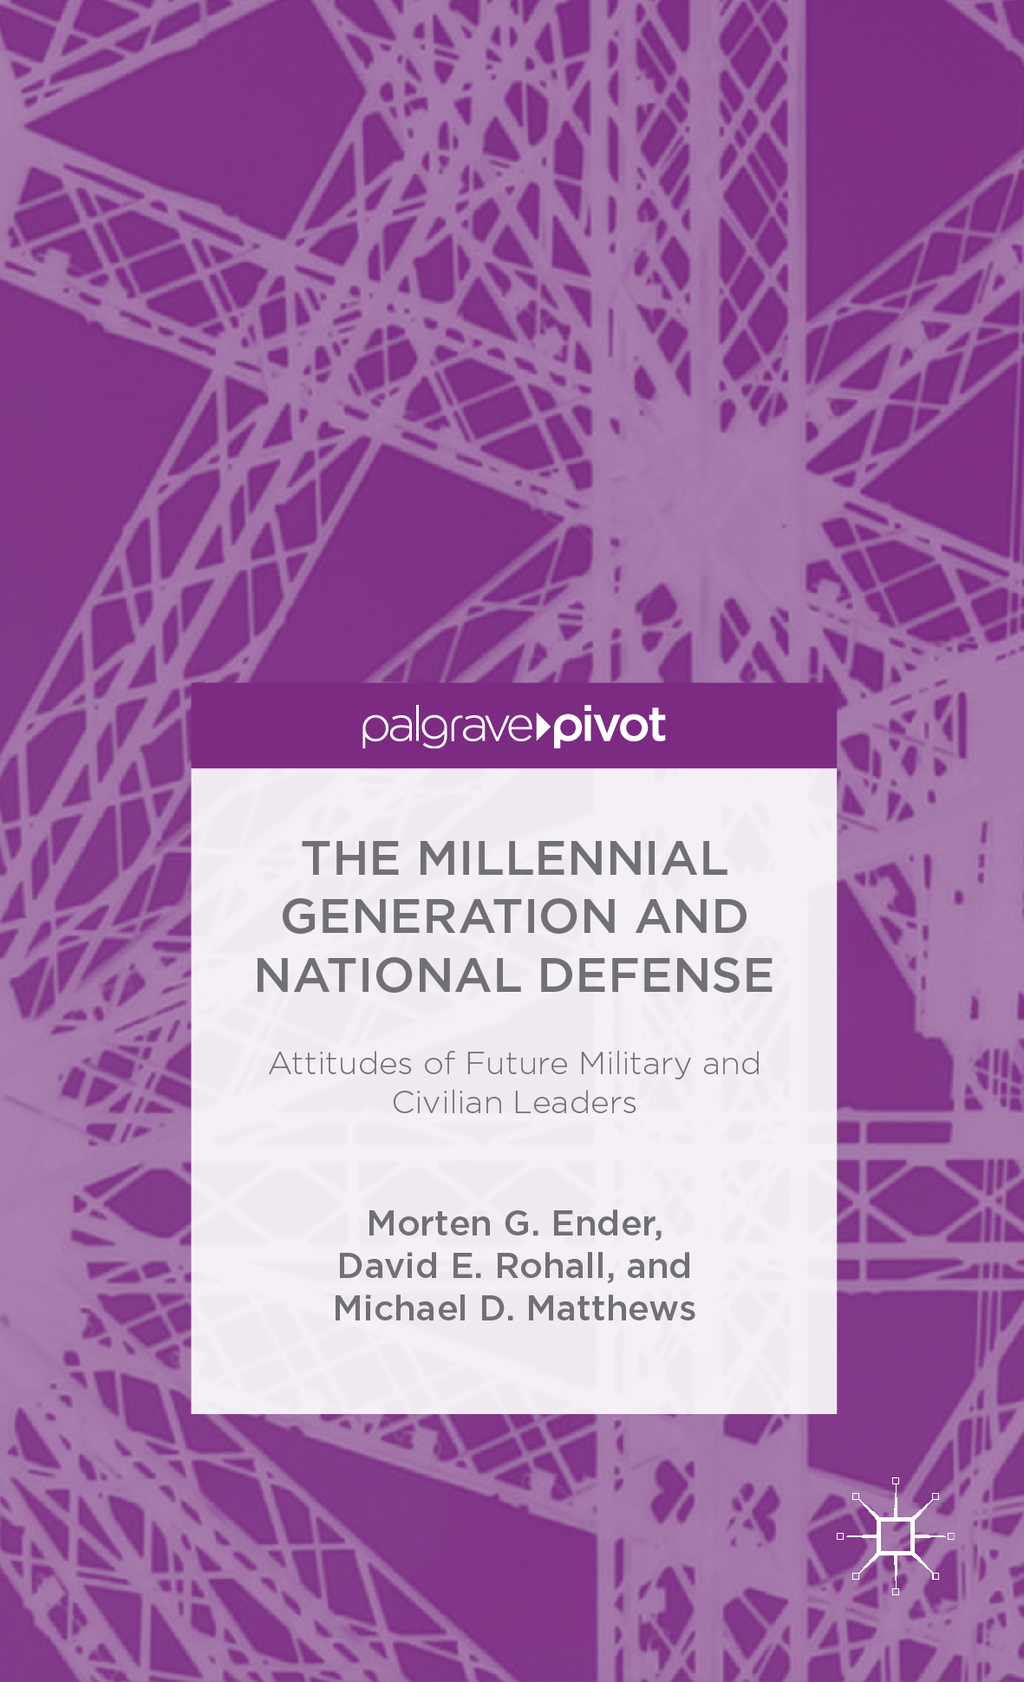 The Millennial Generation and National Defense Attitudes of Future Military and Civilian Leaders